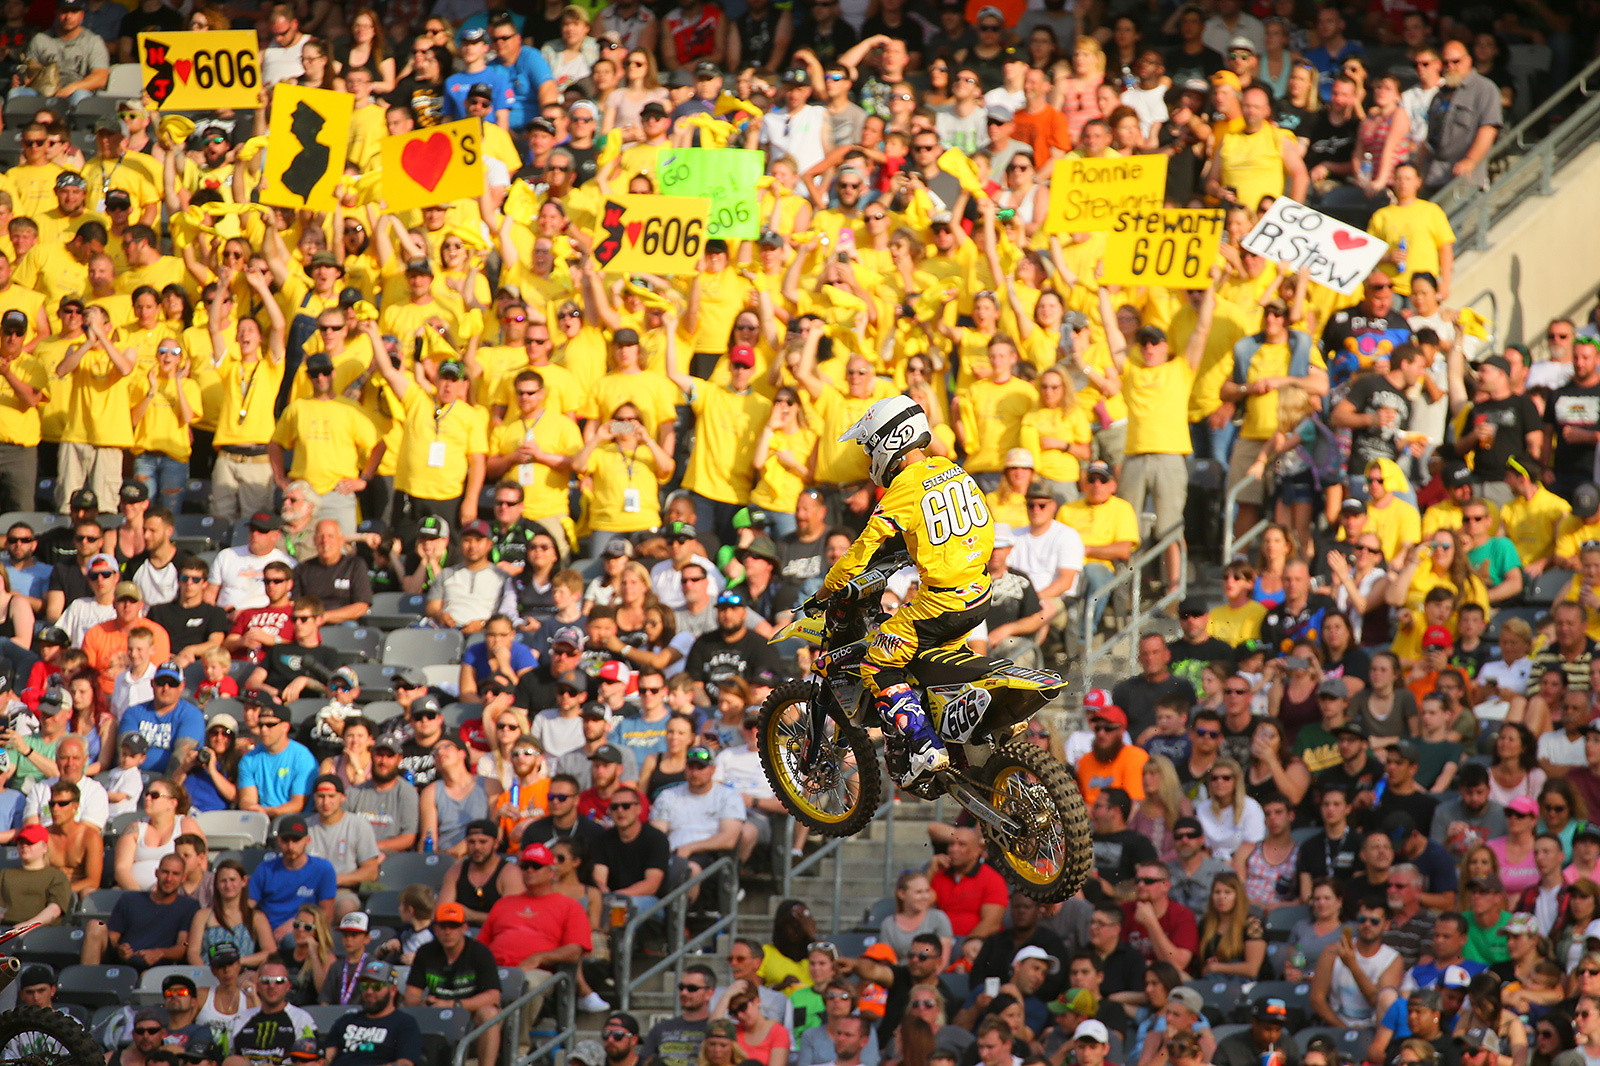 Ronnie Stewart has struggled this season while on the mend from a seriously tweaked wrist. He's only made a handful of mains in '17, but you can count on the home state New Jersey fans coming out strong for him in East Rutherford.